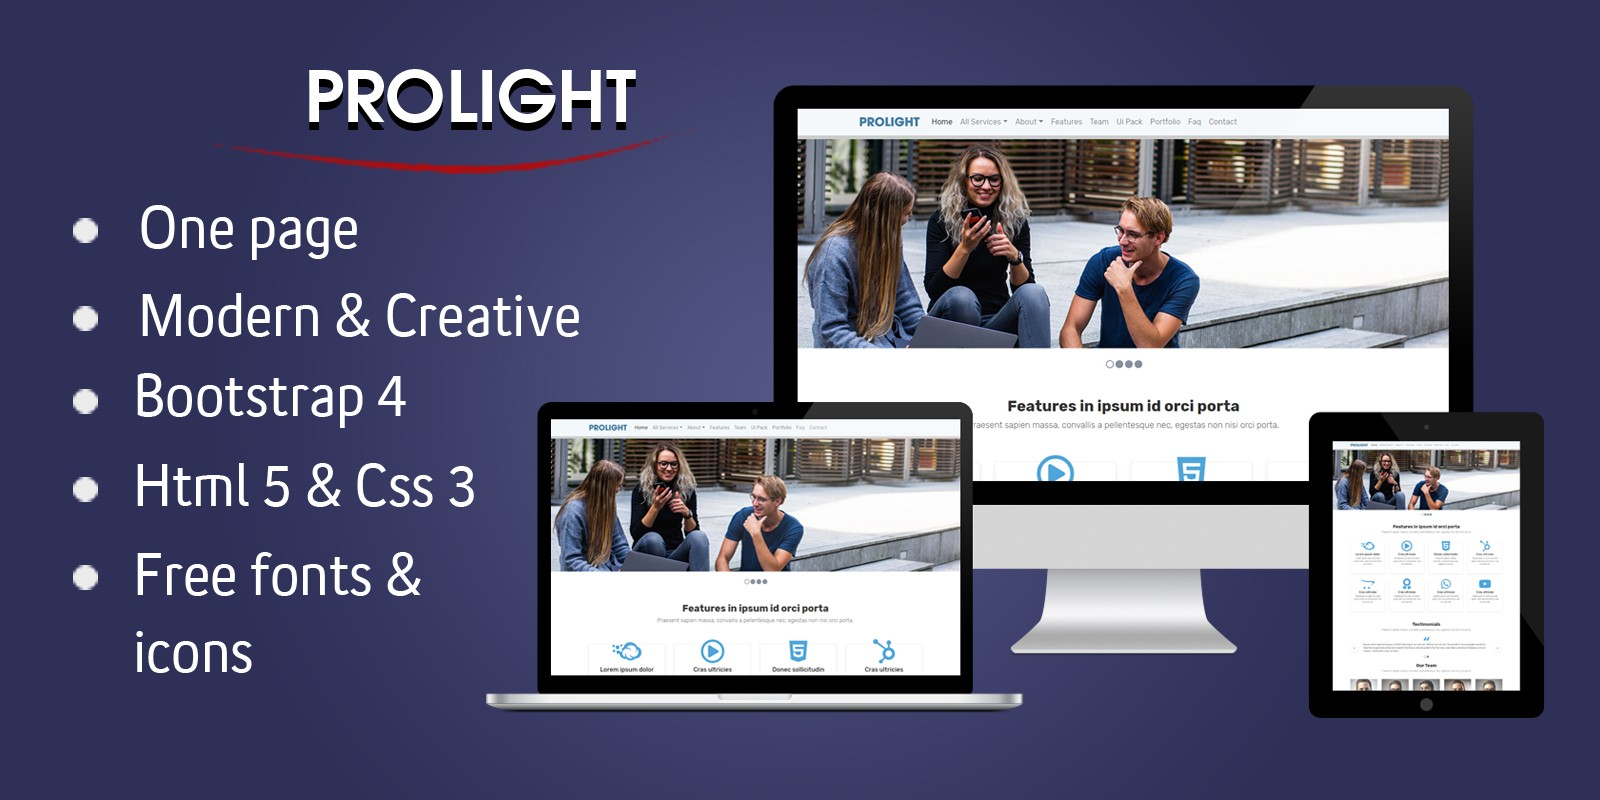 Prolight - Creative App Landing Page